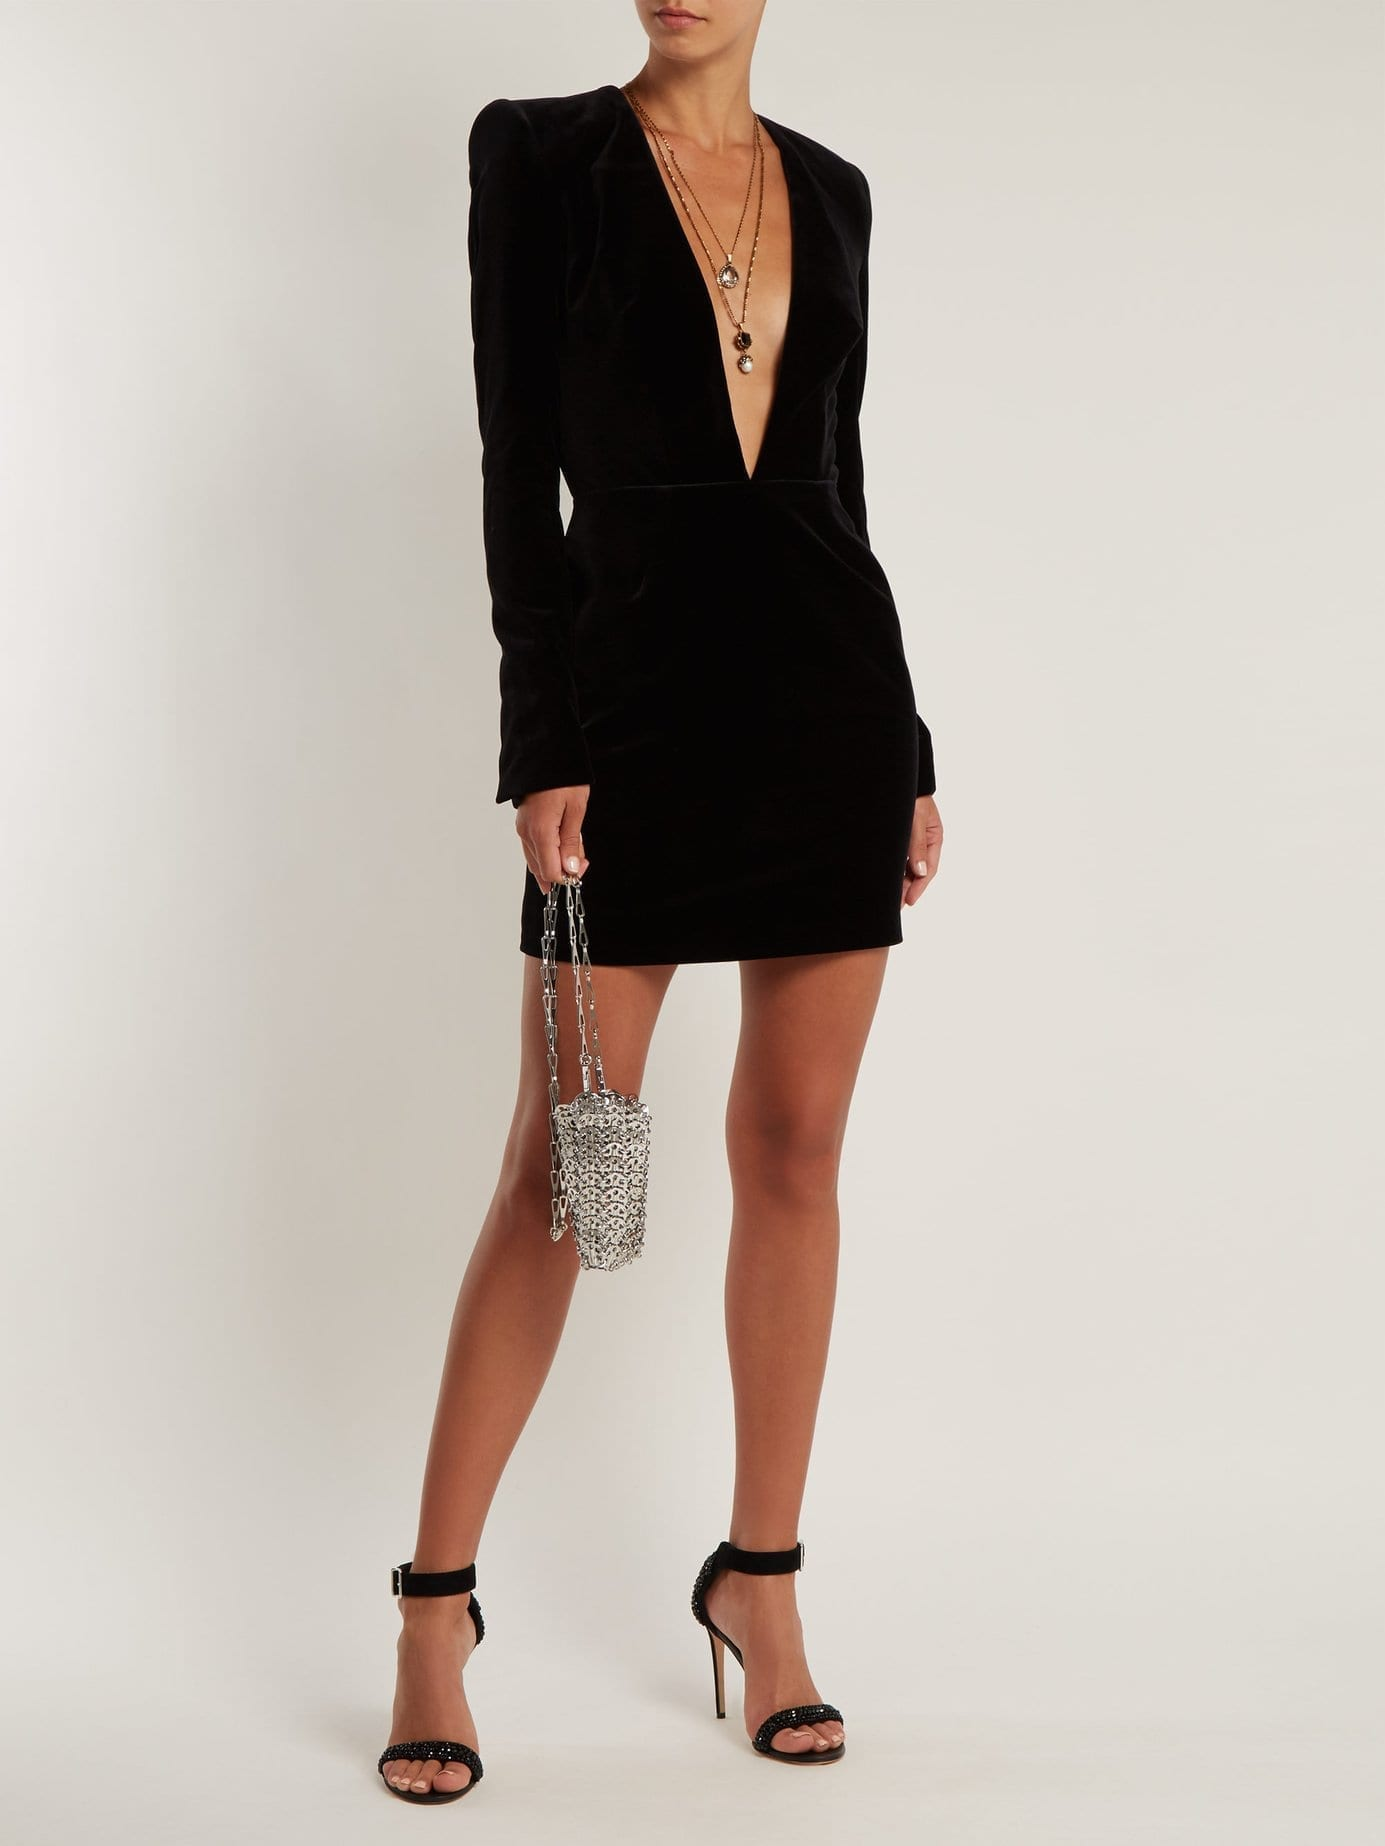 ALEXANDRE VAUTHIER V-neck Velvet Mini Black Dress